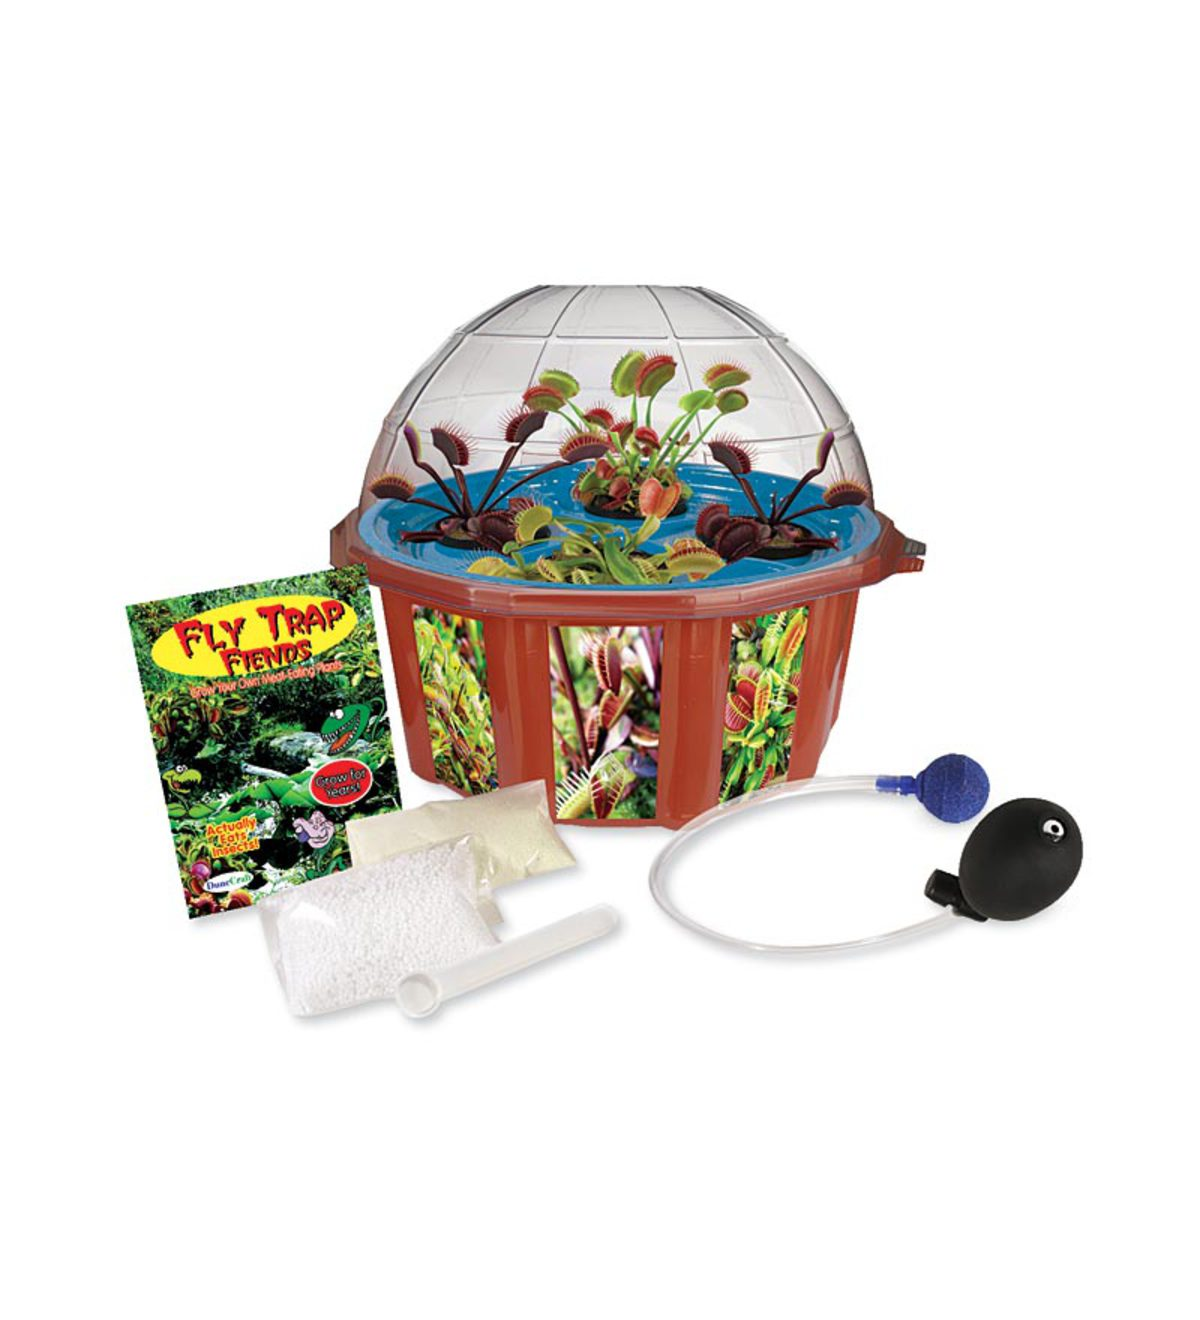 Venus Fly Trap Hydrodome Greenhouse Kit